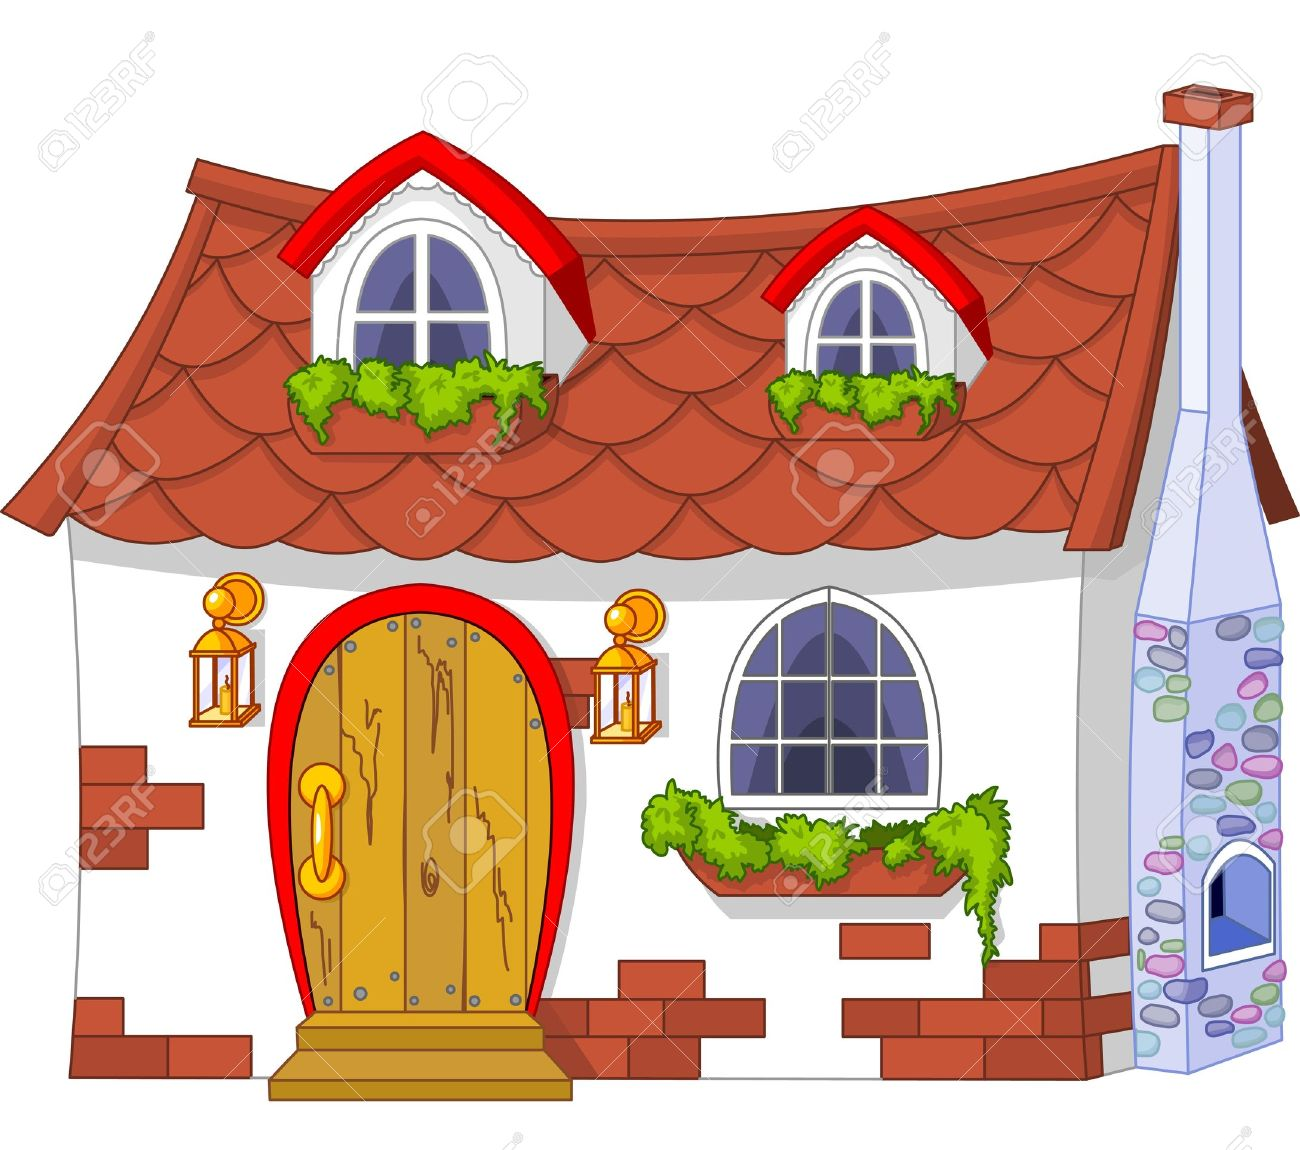 Illustration Of A Cute Little House Royalty Free Cliparts, Vectors ...